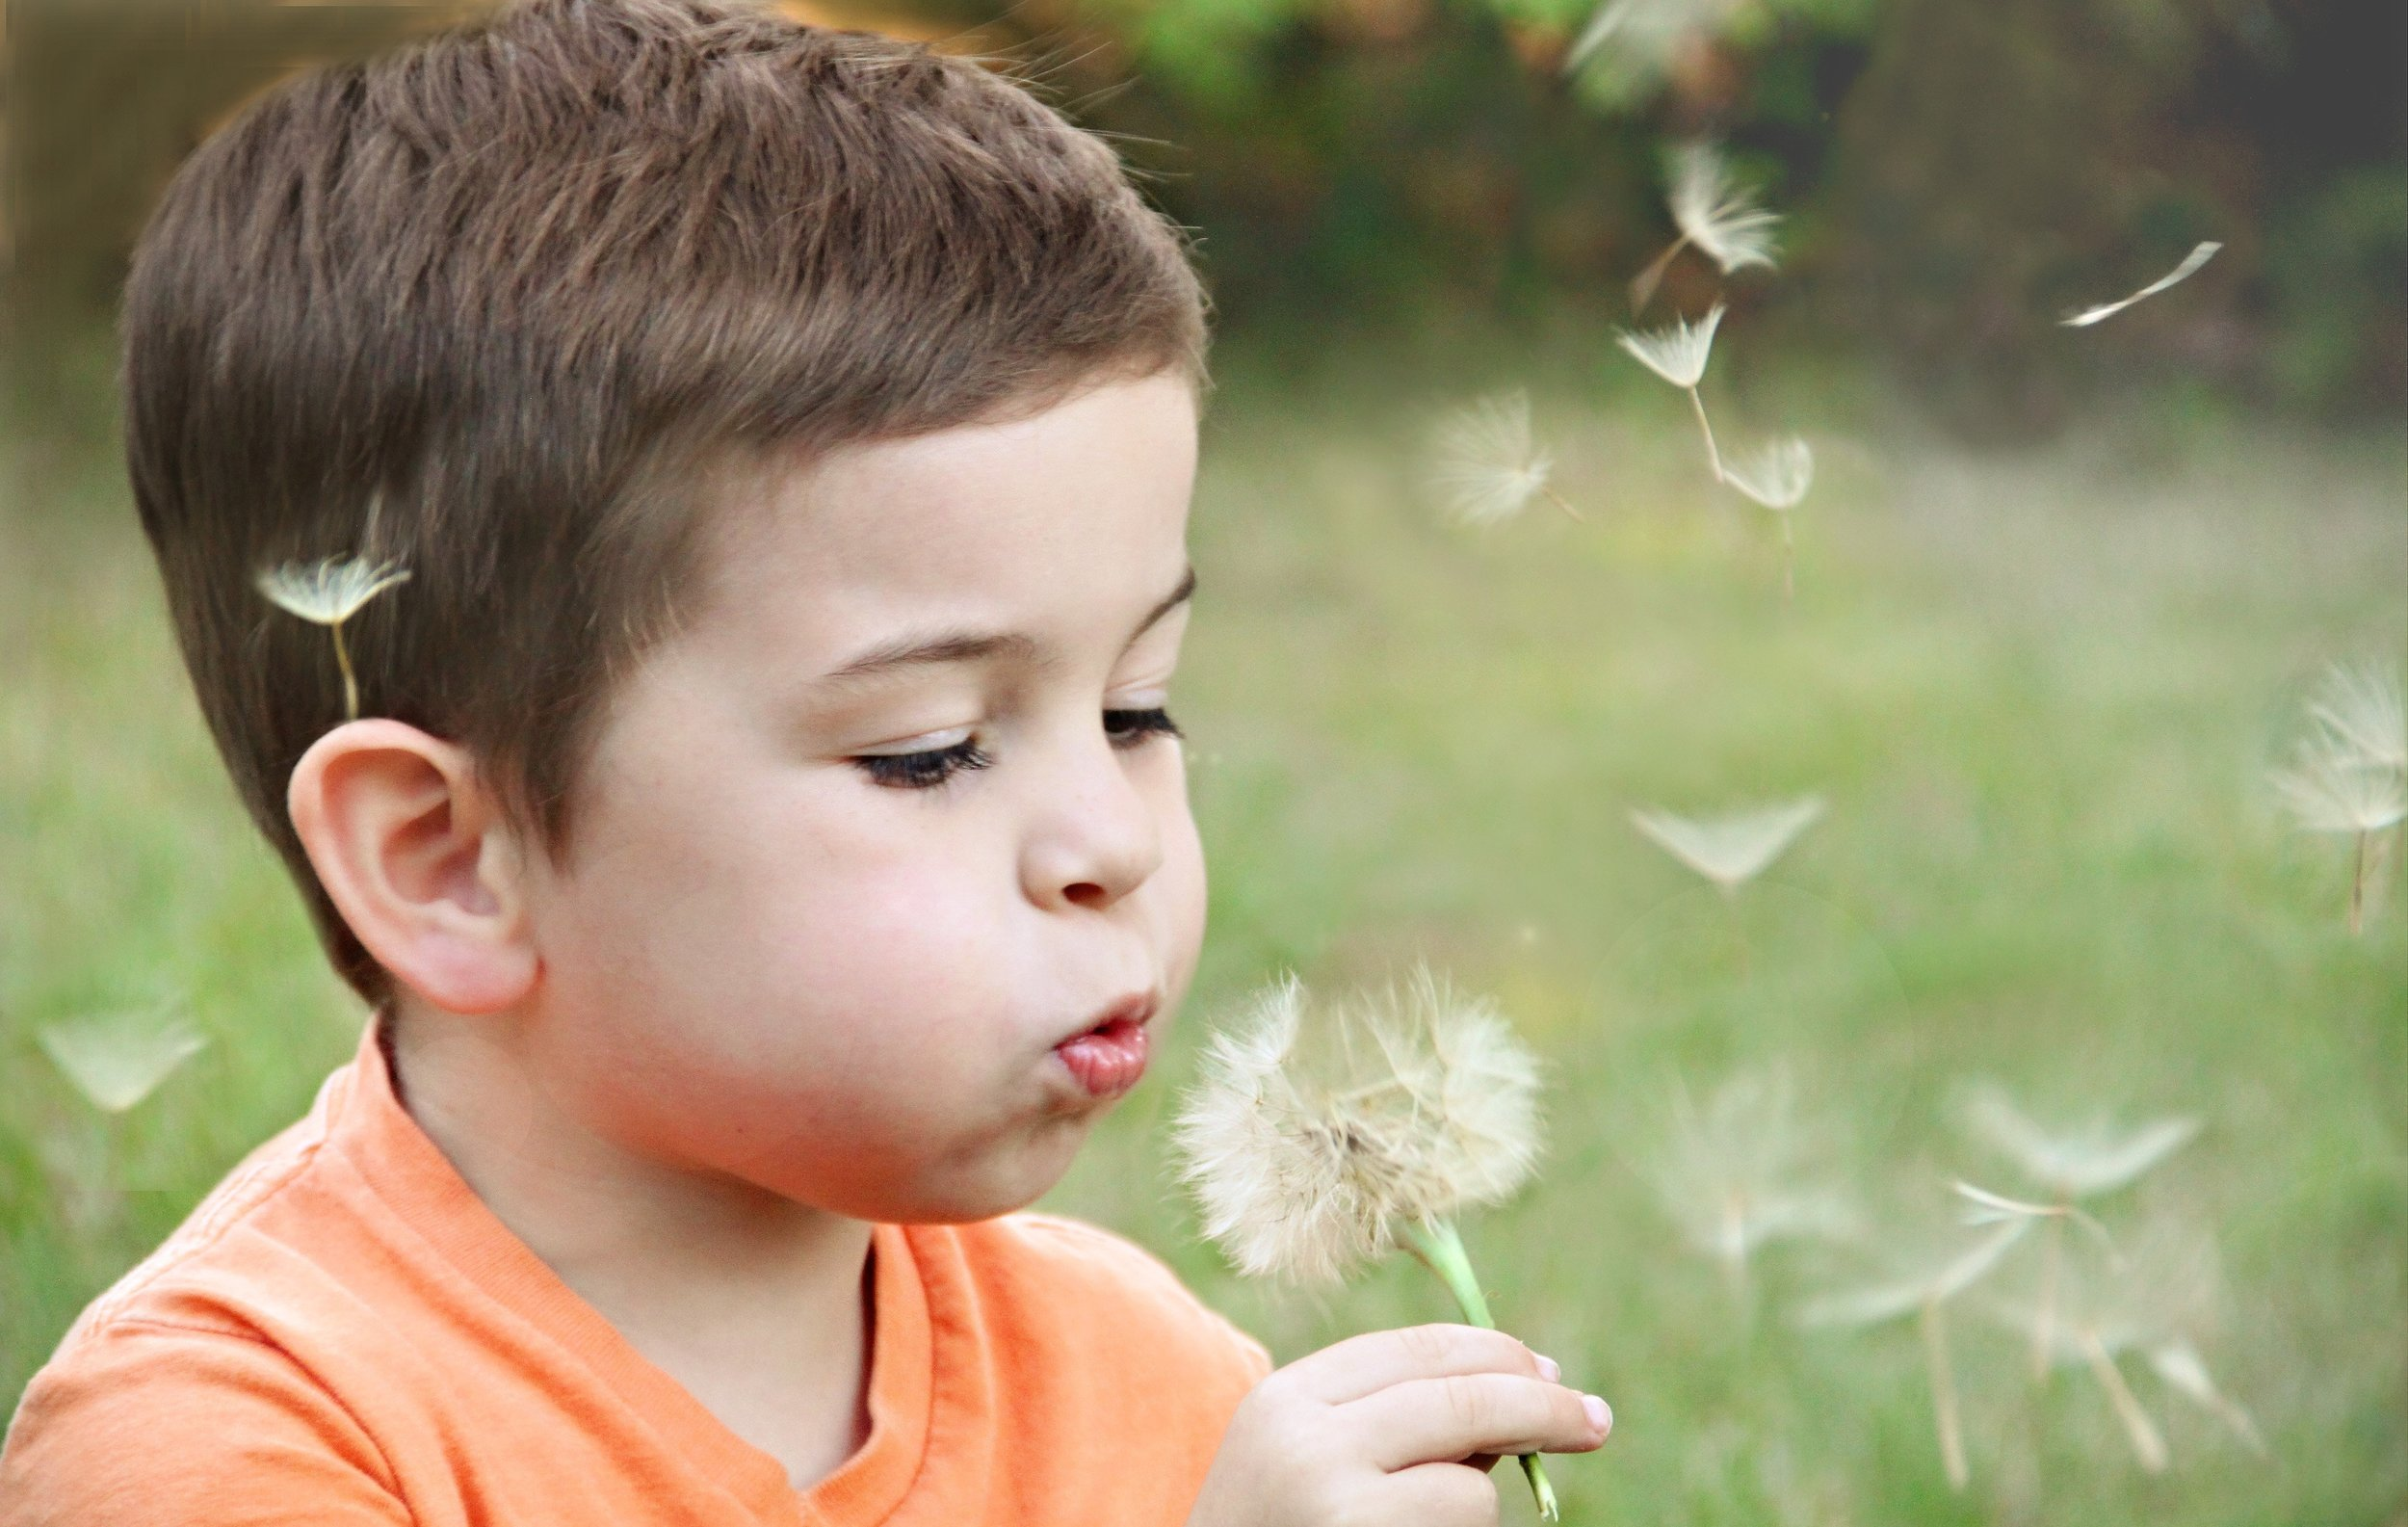 blowing-blurred-background-boy-1231215.jpg